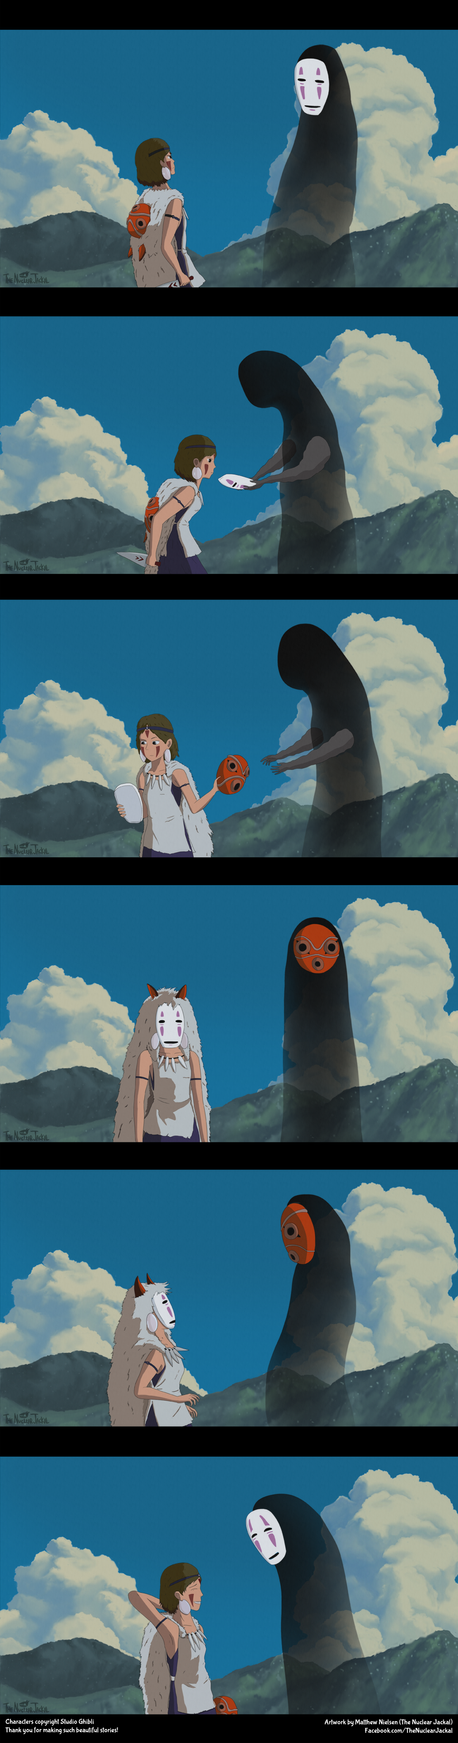 San and No Face mask-swap (Comic) by NuclearJackal